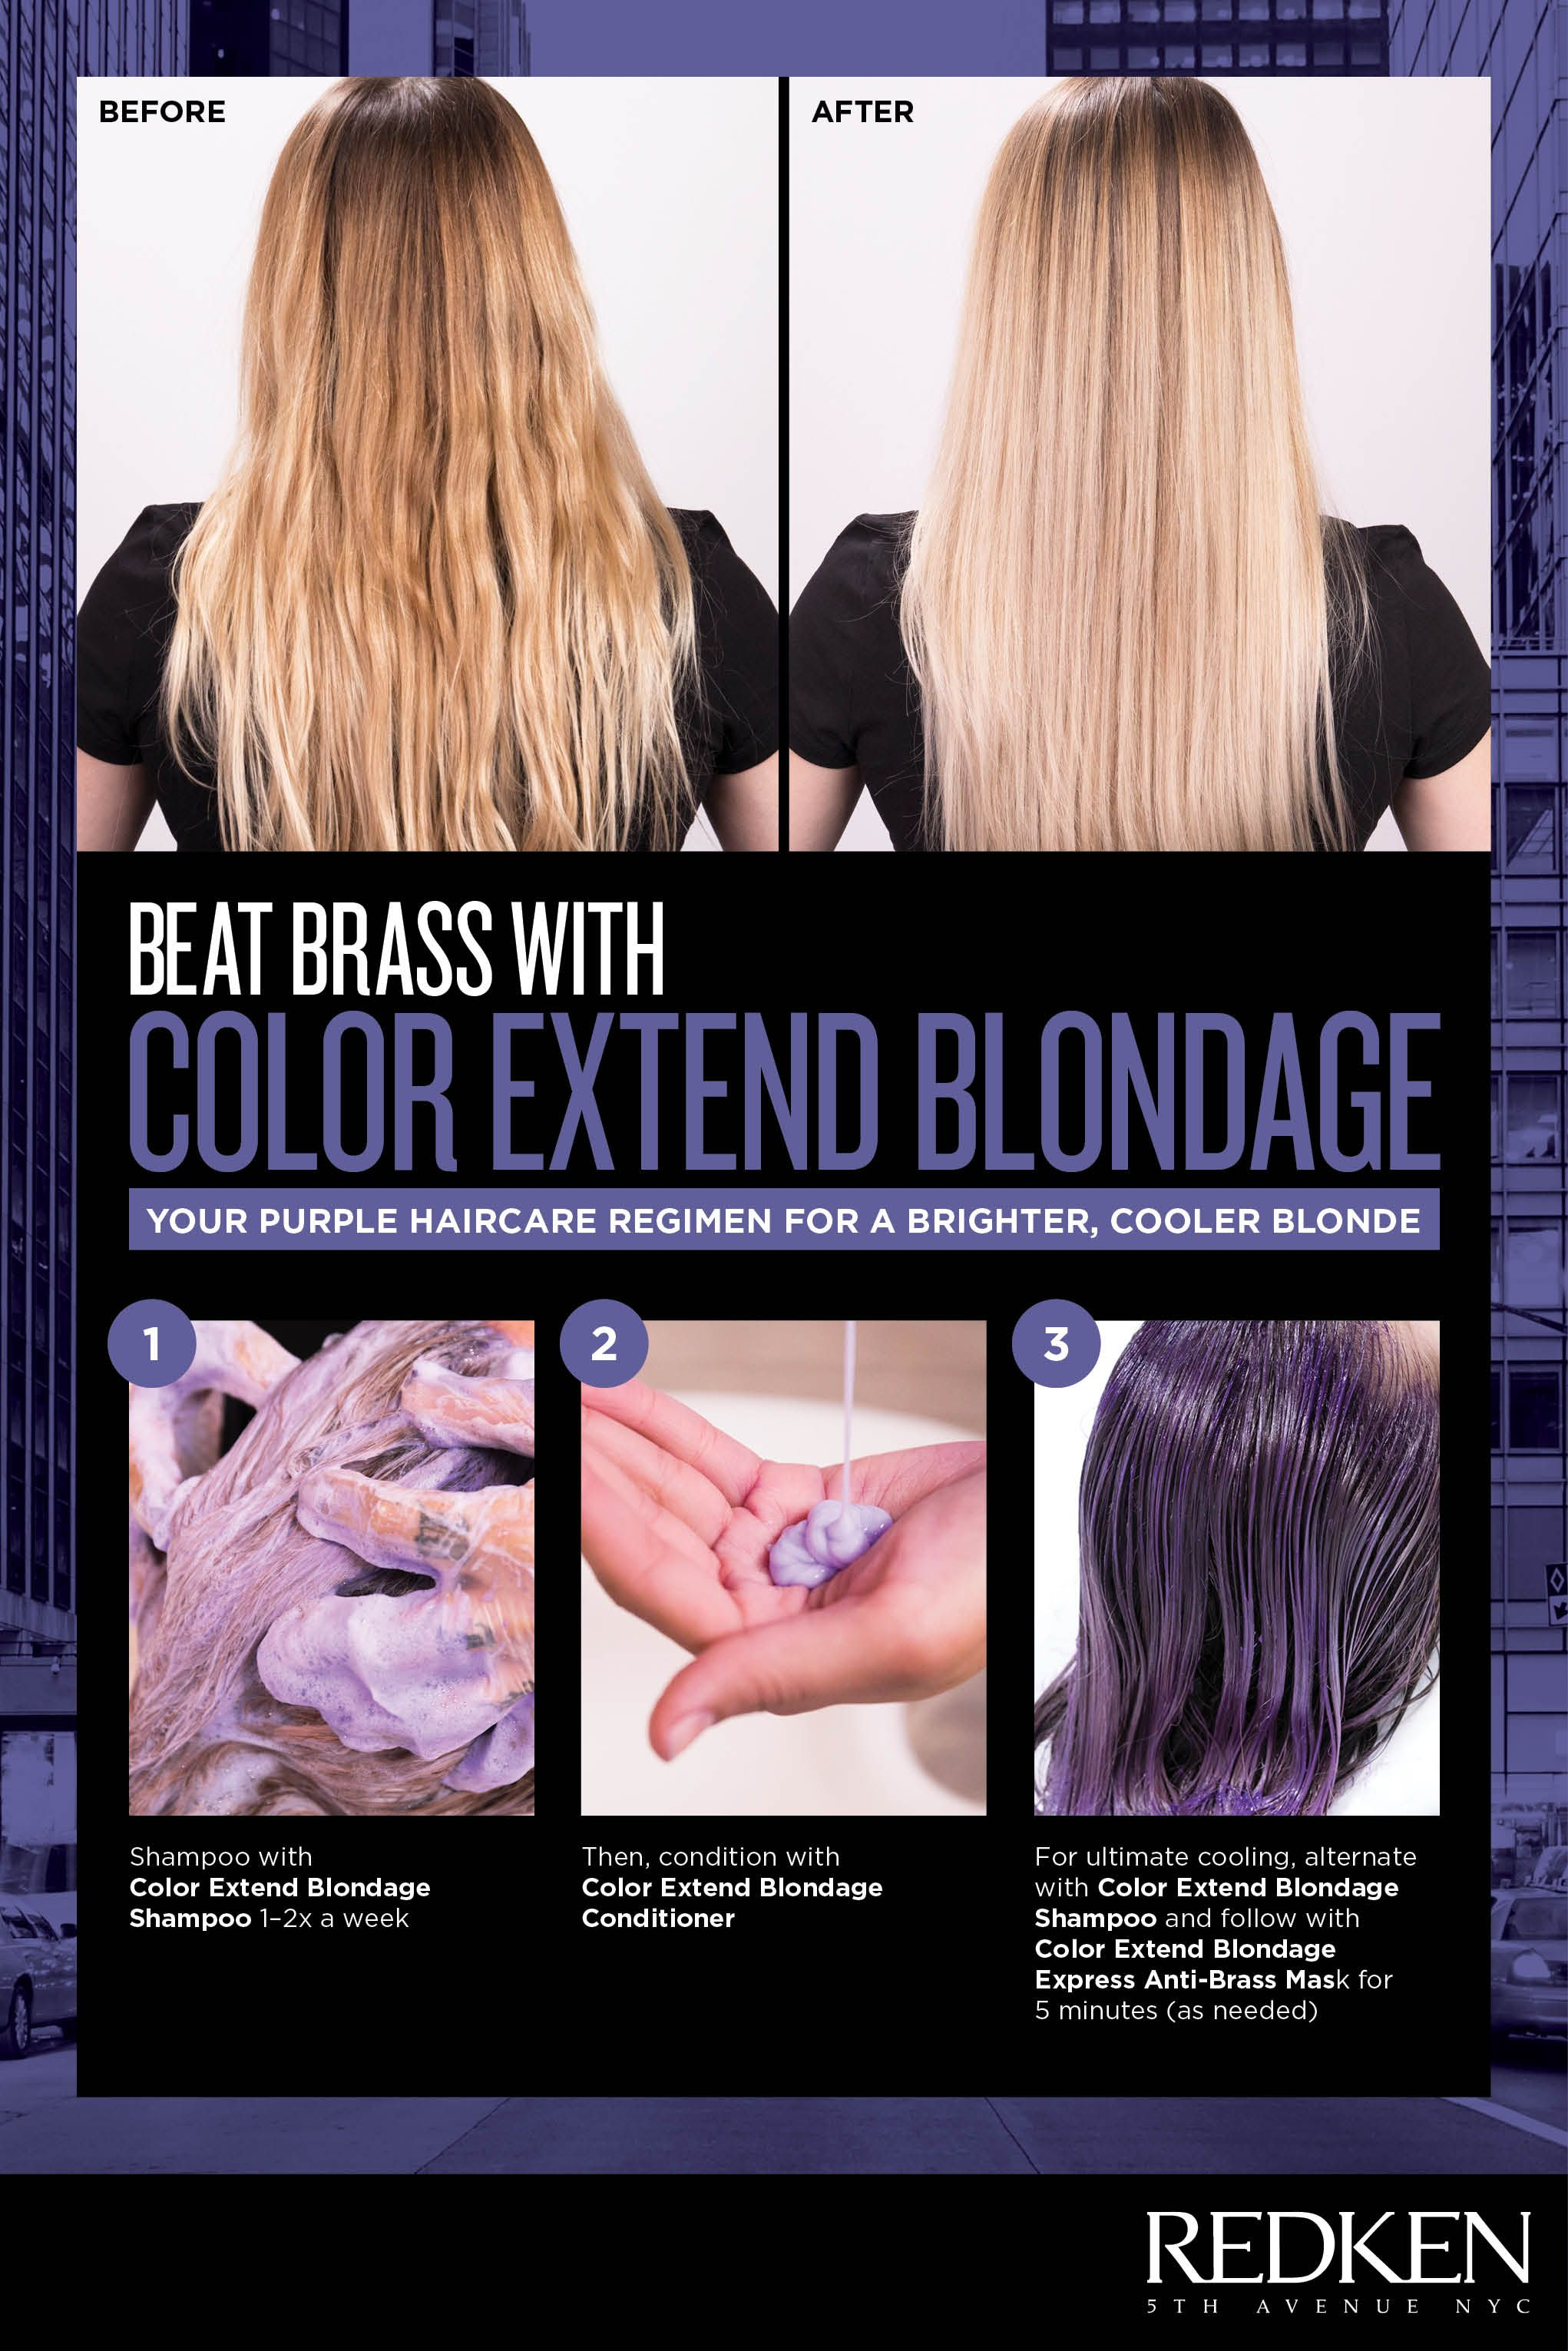 Tone Brassy Hair With Redken Color Extend Blondage Discover The Perfect Haircare Regimen For Y Purple Shampoo For Blondes Purple Shampoo Redken Purple Shampoo